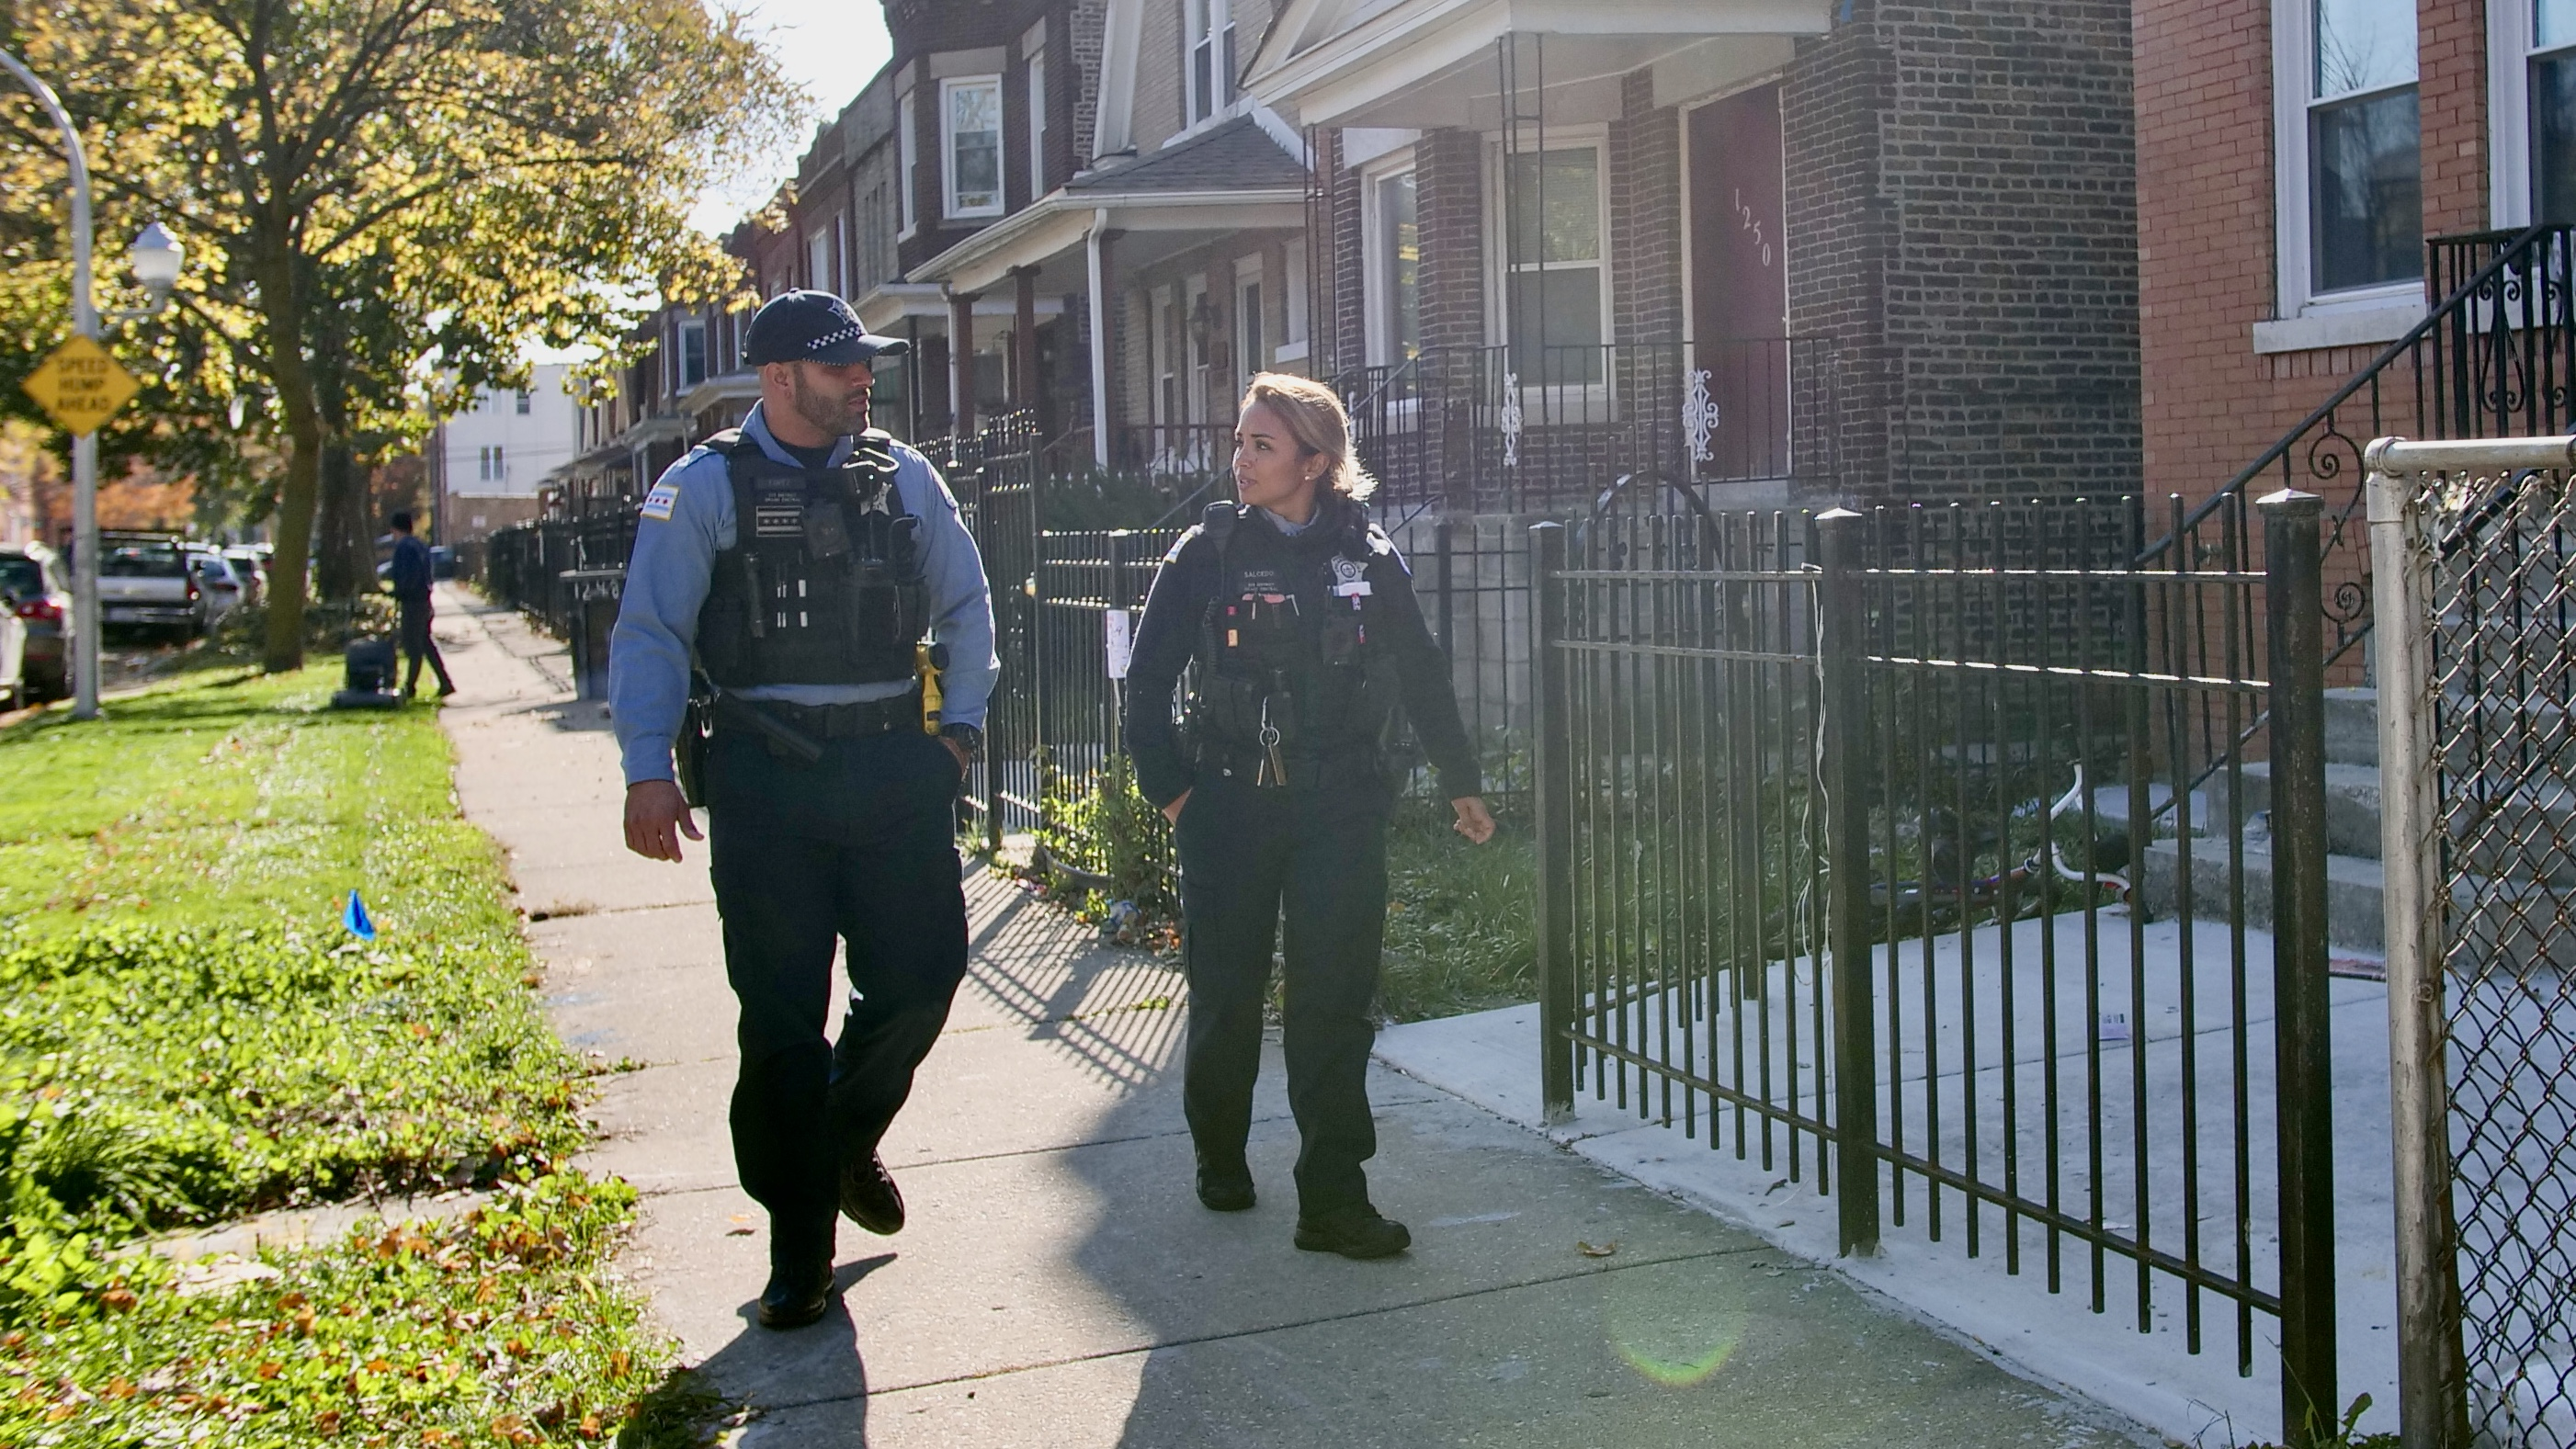 A New Model Of Policing In Chicago